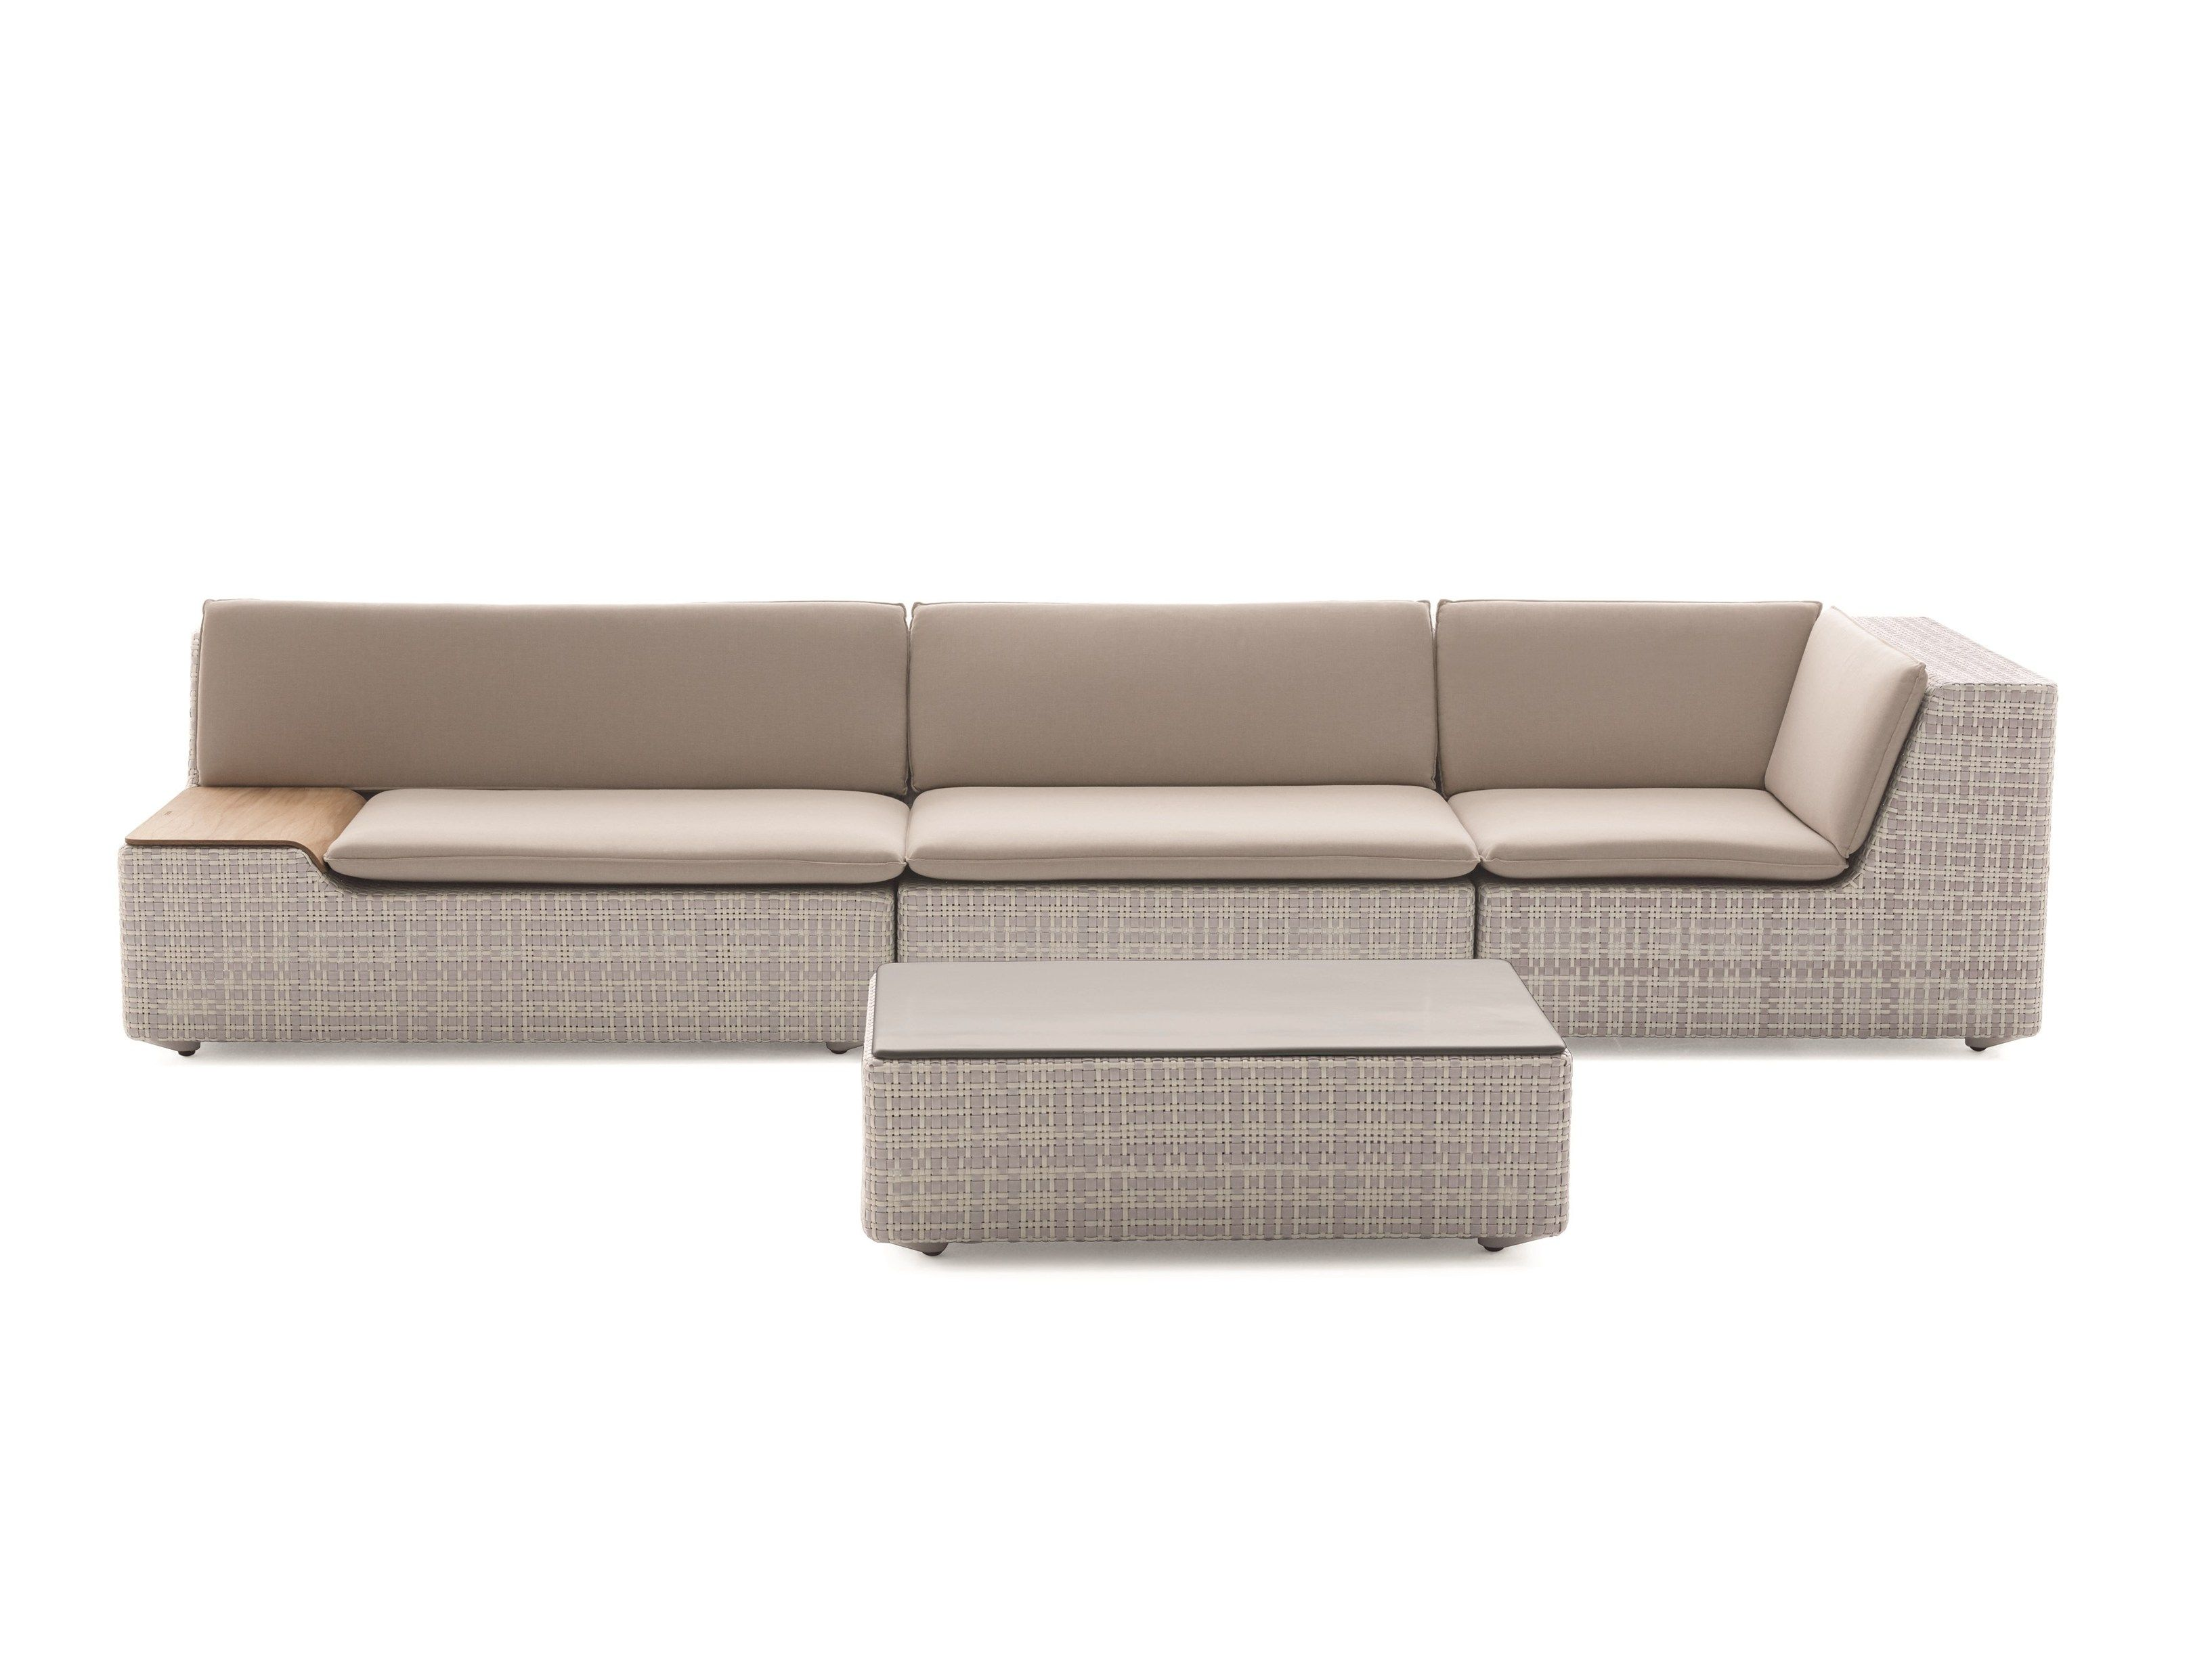 Outdoor Sofa Halbrund Lou Modular Sofa Lou Collection By Dedon Design Toan Nguyen